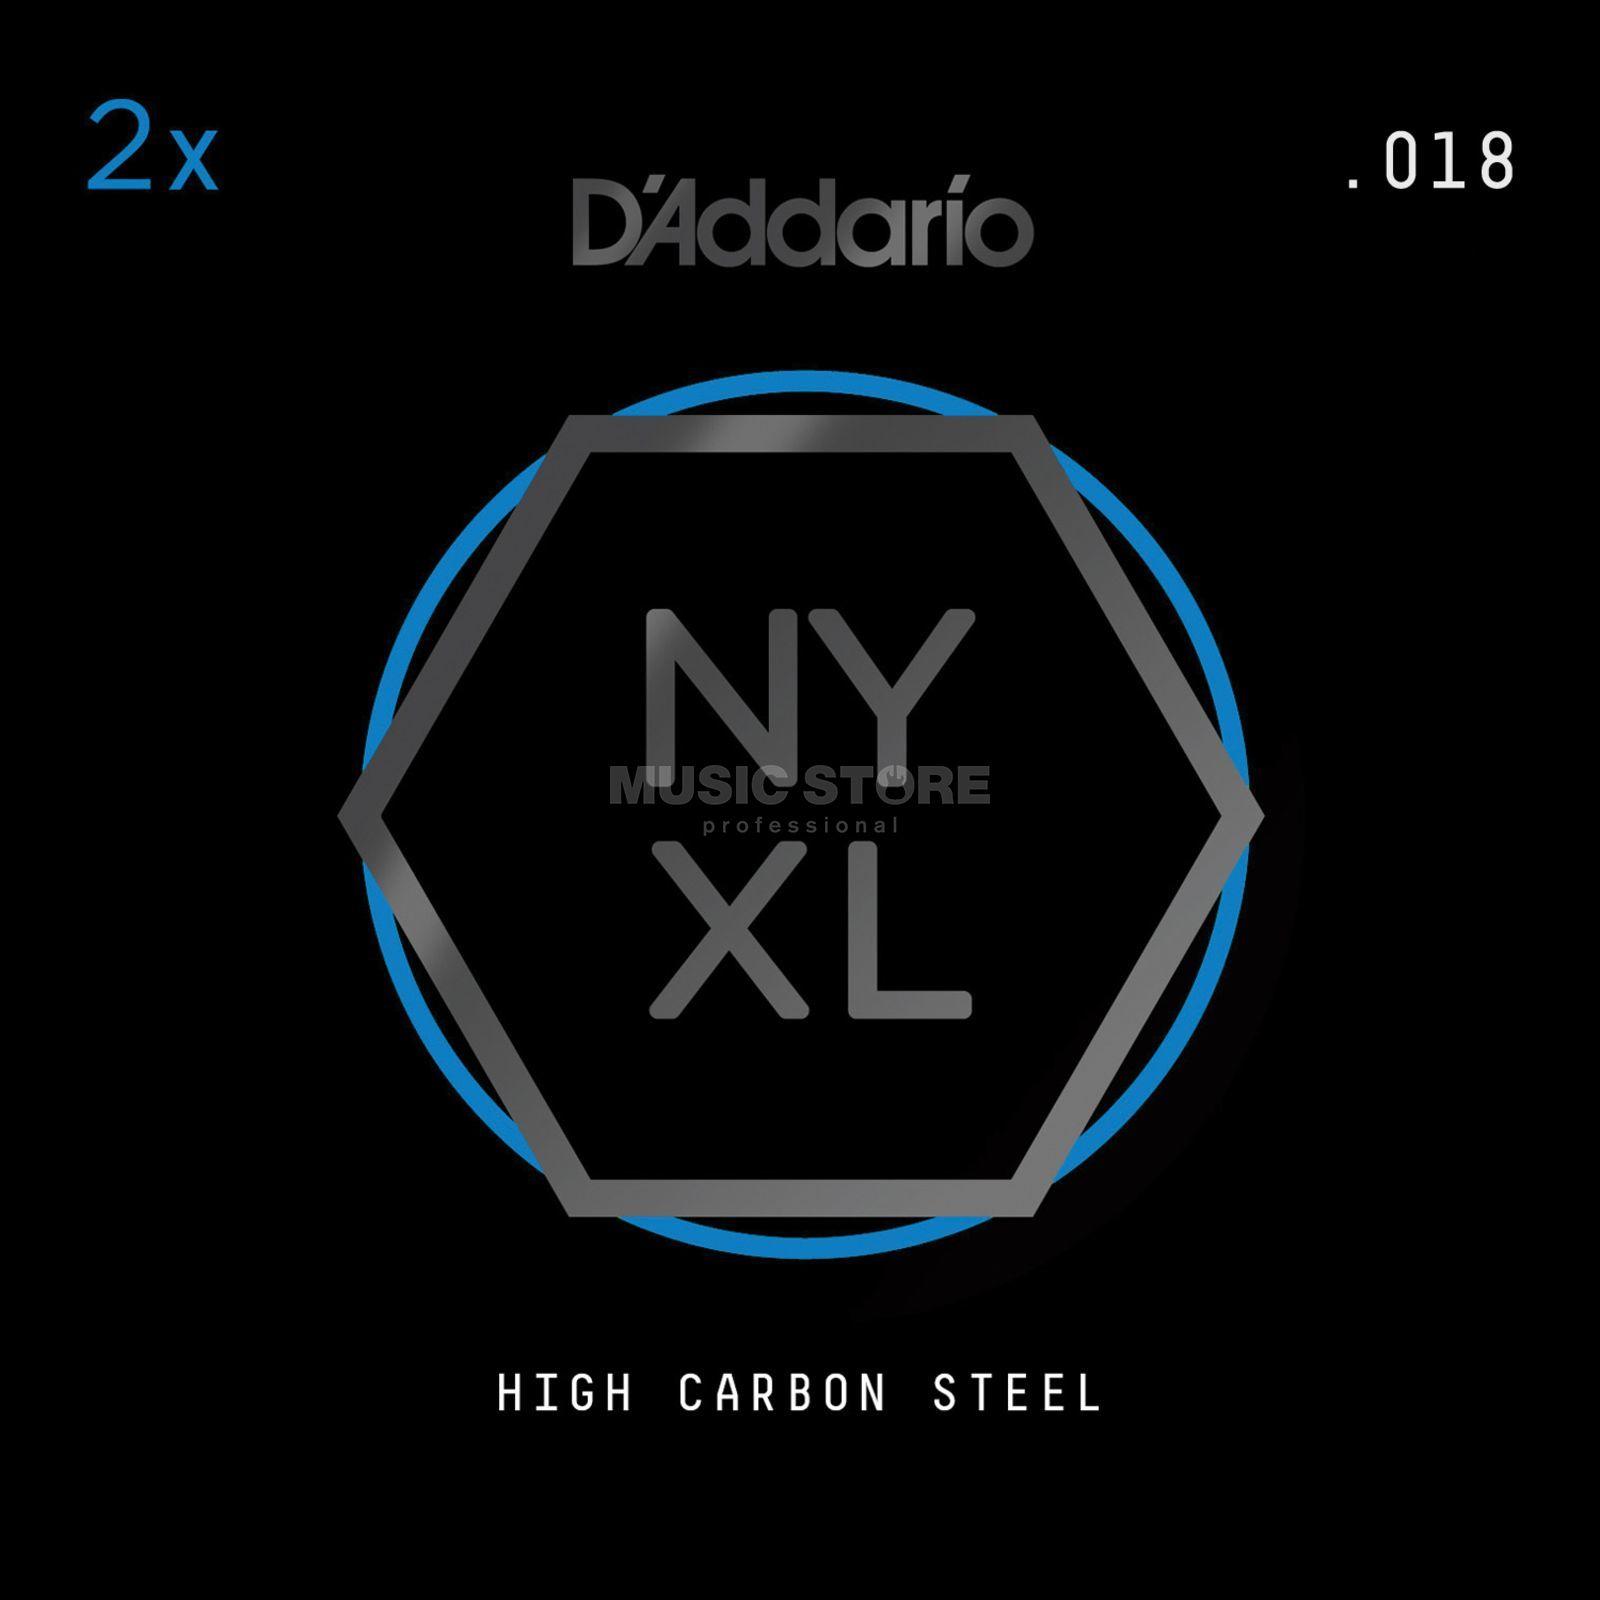 D'Addario NYPL018 Plain Single String 2-Pack - High Carbon Steel Product Image